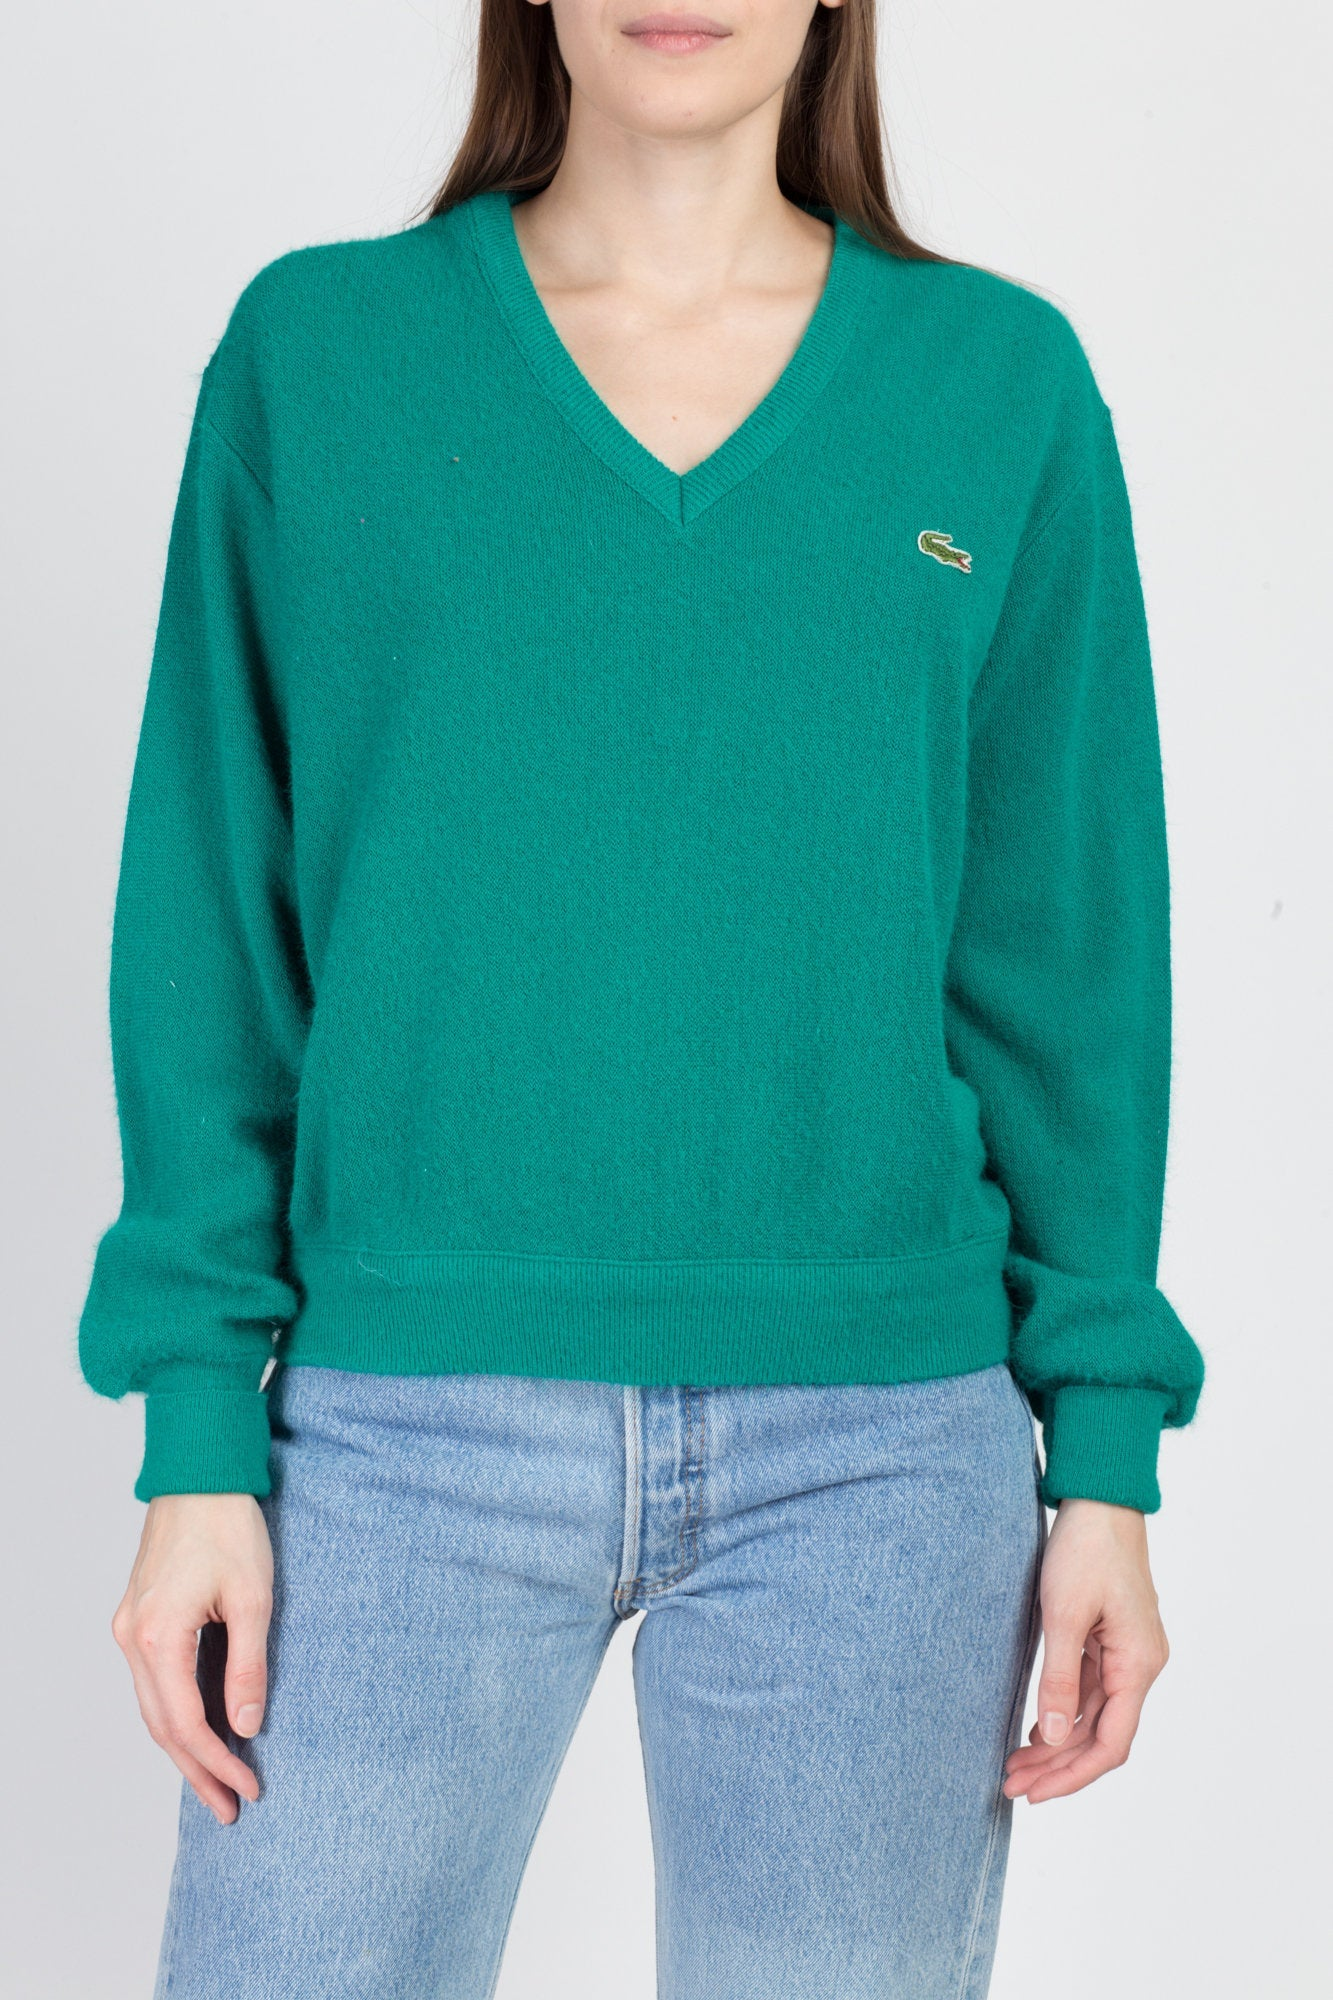 70s 80s Teal Green Lacoste Sweater - Men's Medium